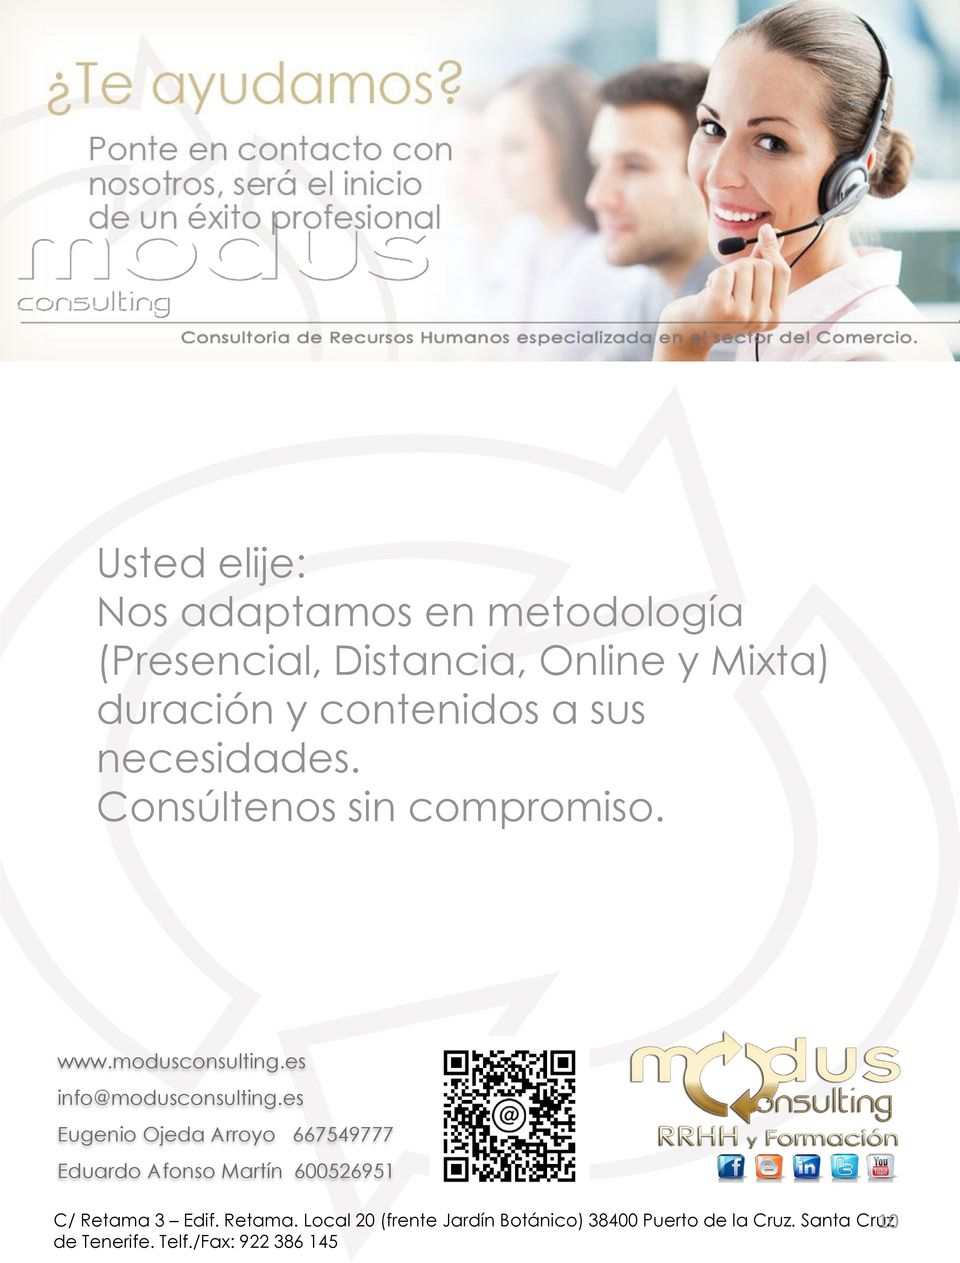 es info@modusconsulting.